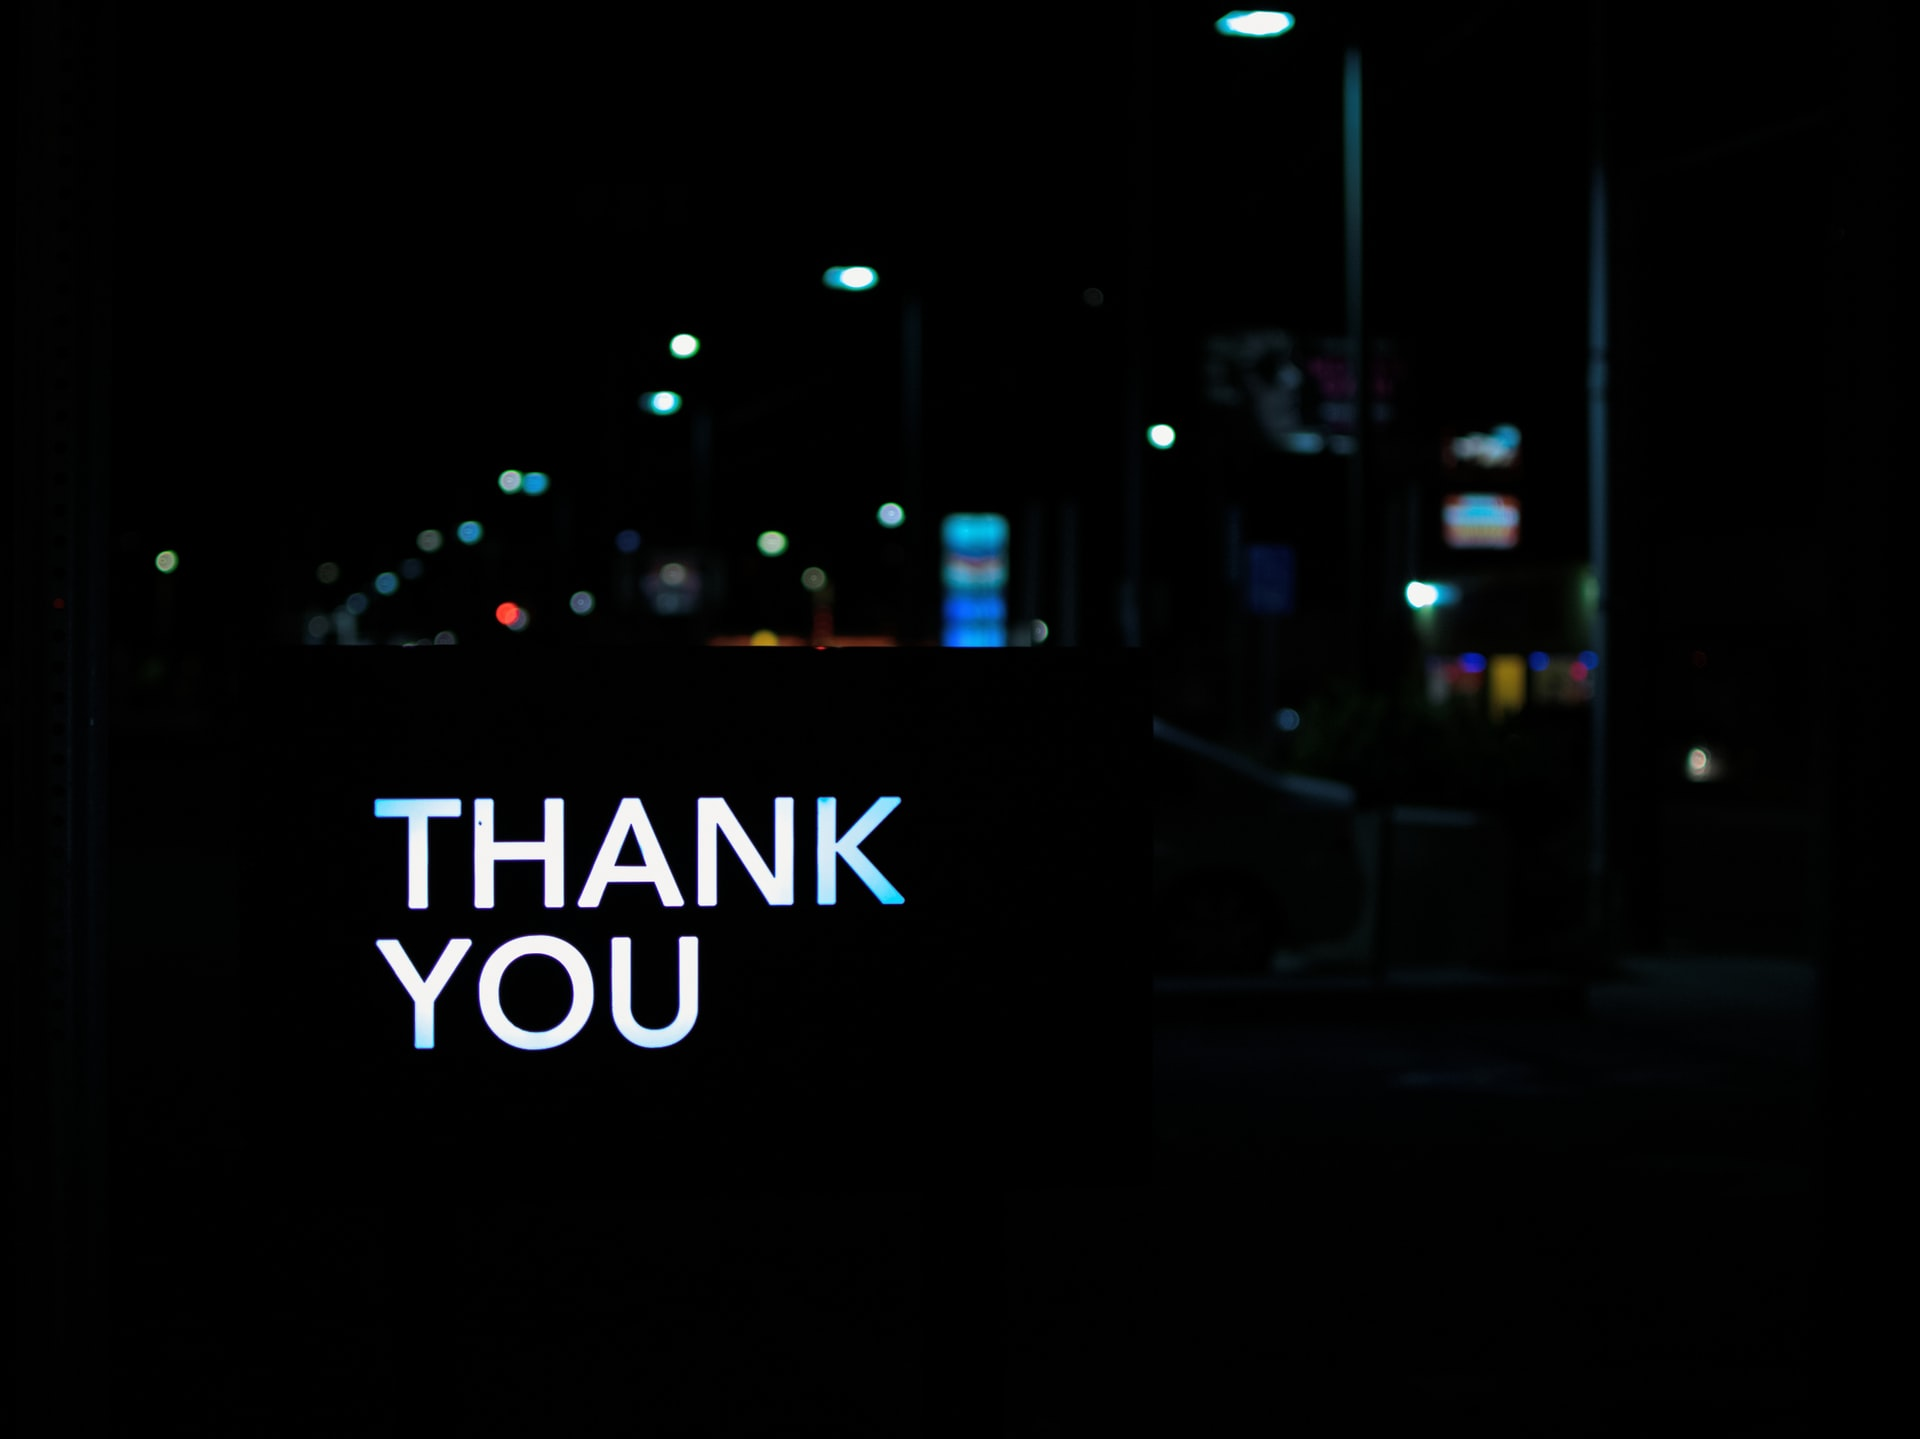 3 Ways to Show Appreciation for Your Valued Customers